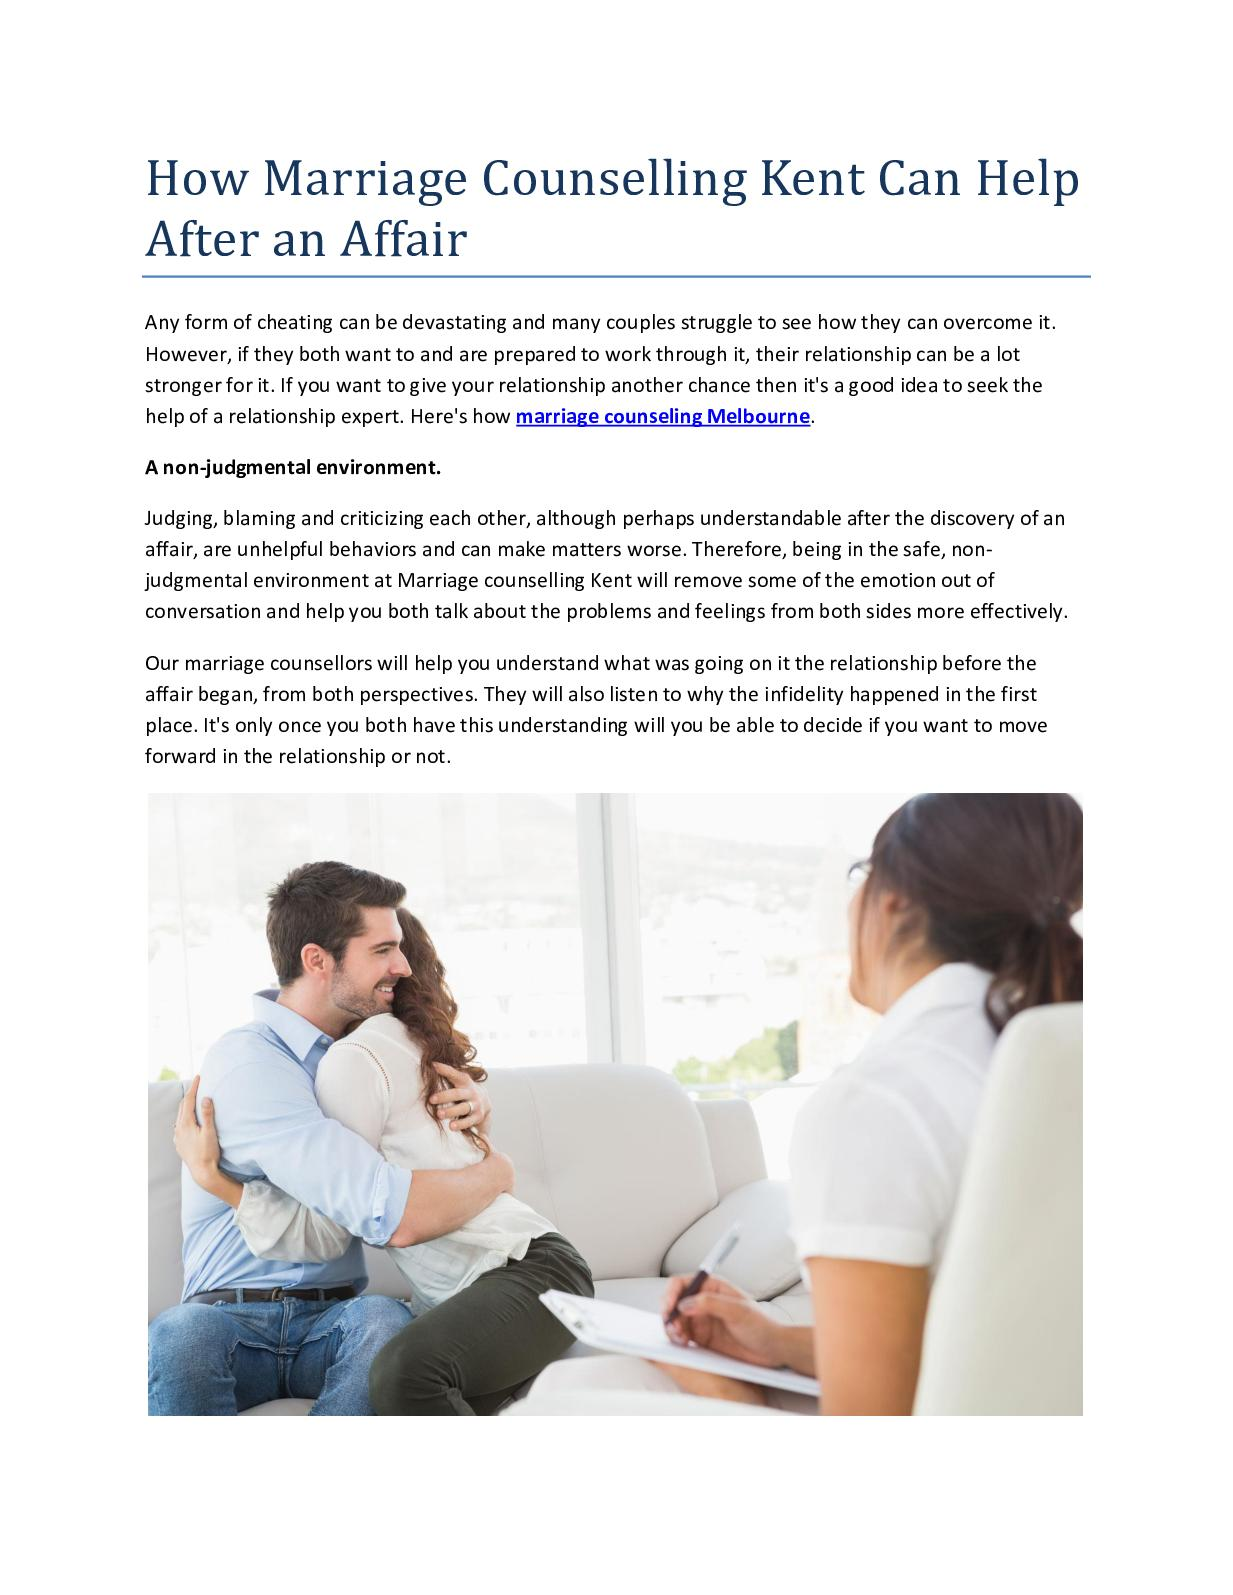 After relationship cheating forward moving in a After the